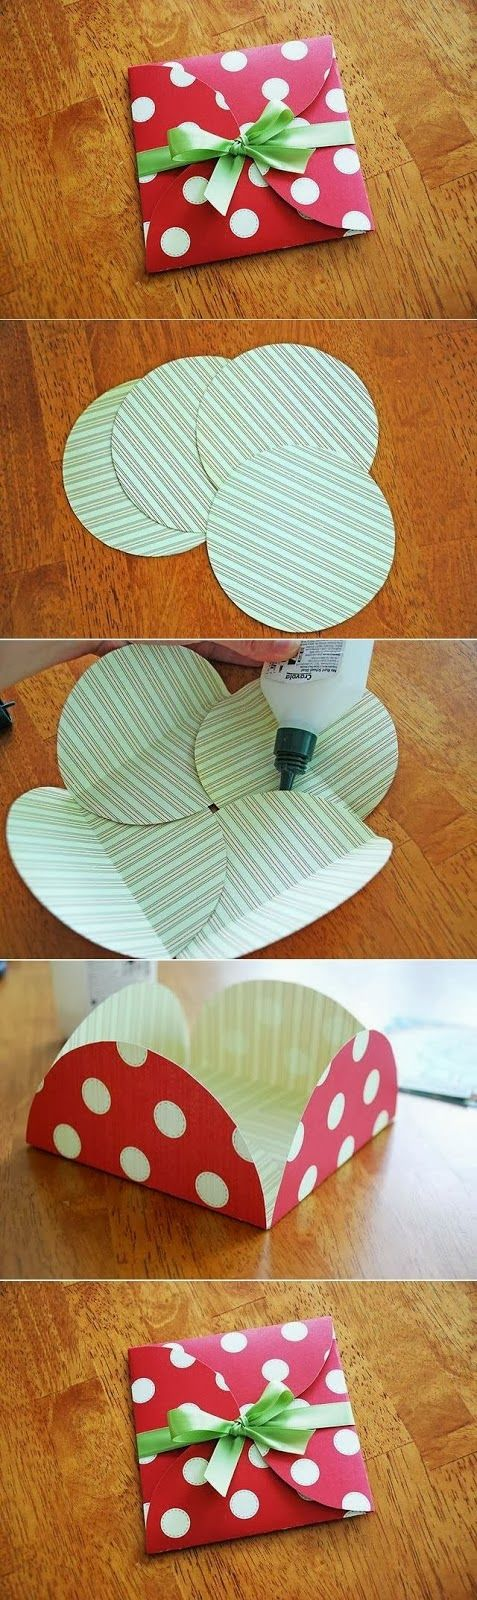 Card Making Envelope Ideas Part - 45: Make A Simple Beautiful Gift Envelope...from Four Paper Circles